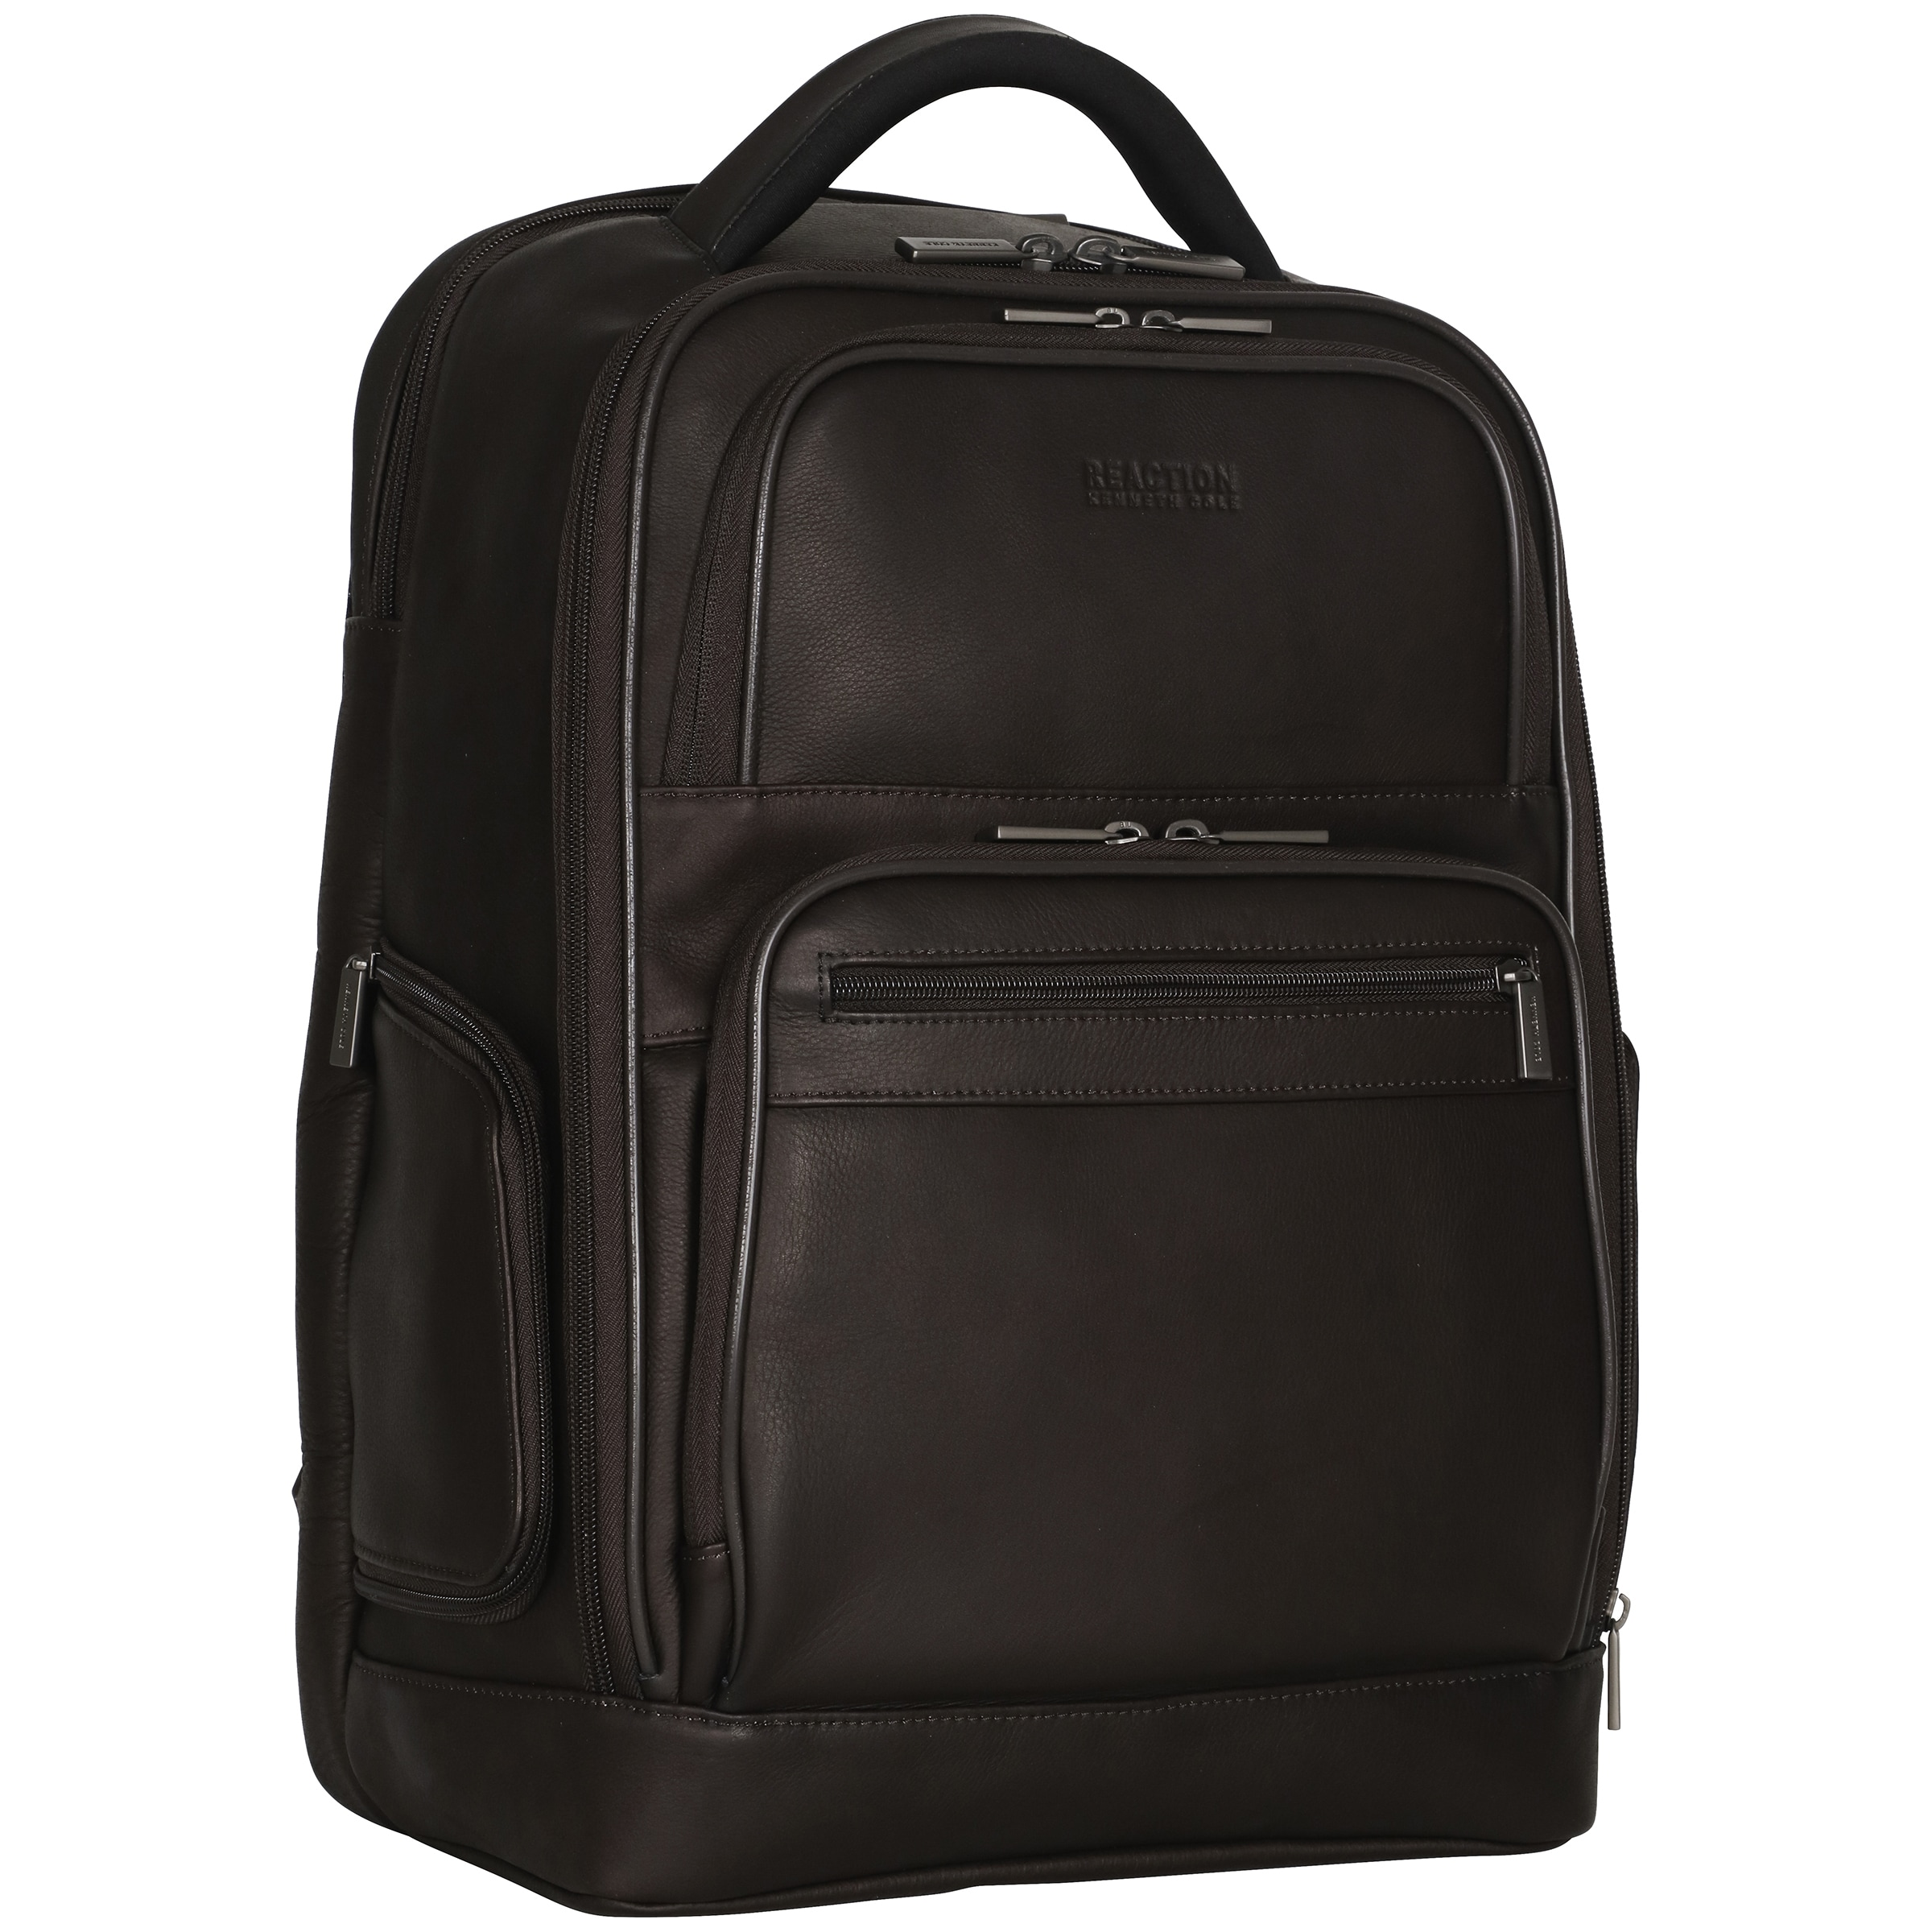 3a0765bcf Shop Kenneth Cole Reaction Colombian Leather Dual Compartment 15.6-inch  Laptop Business Backpack with Anti-theft RFID - Free Shipping Today -  Overstock - ...